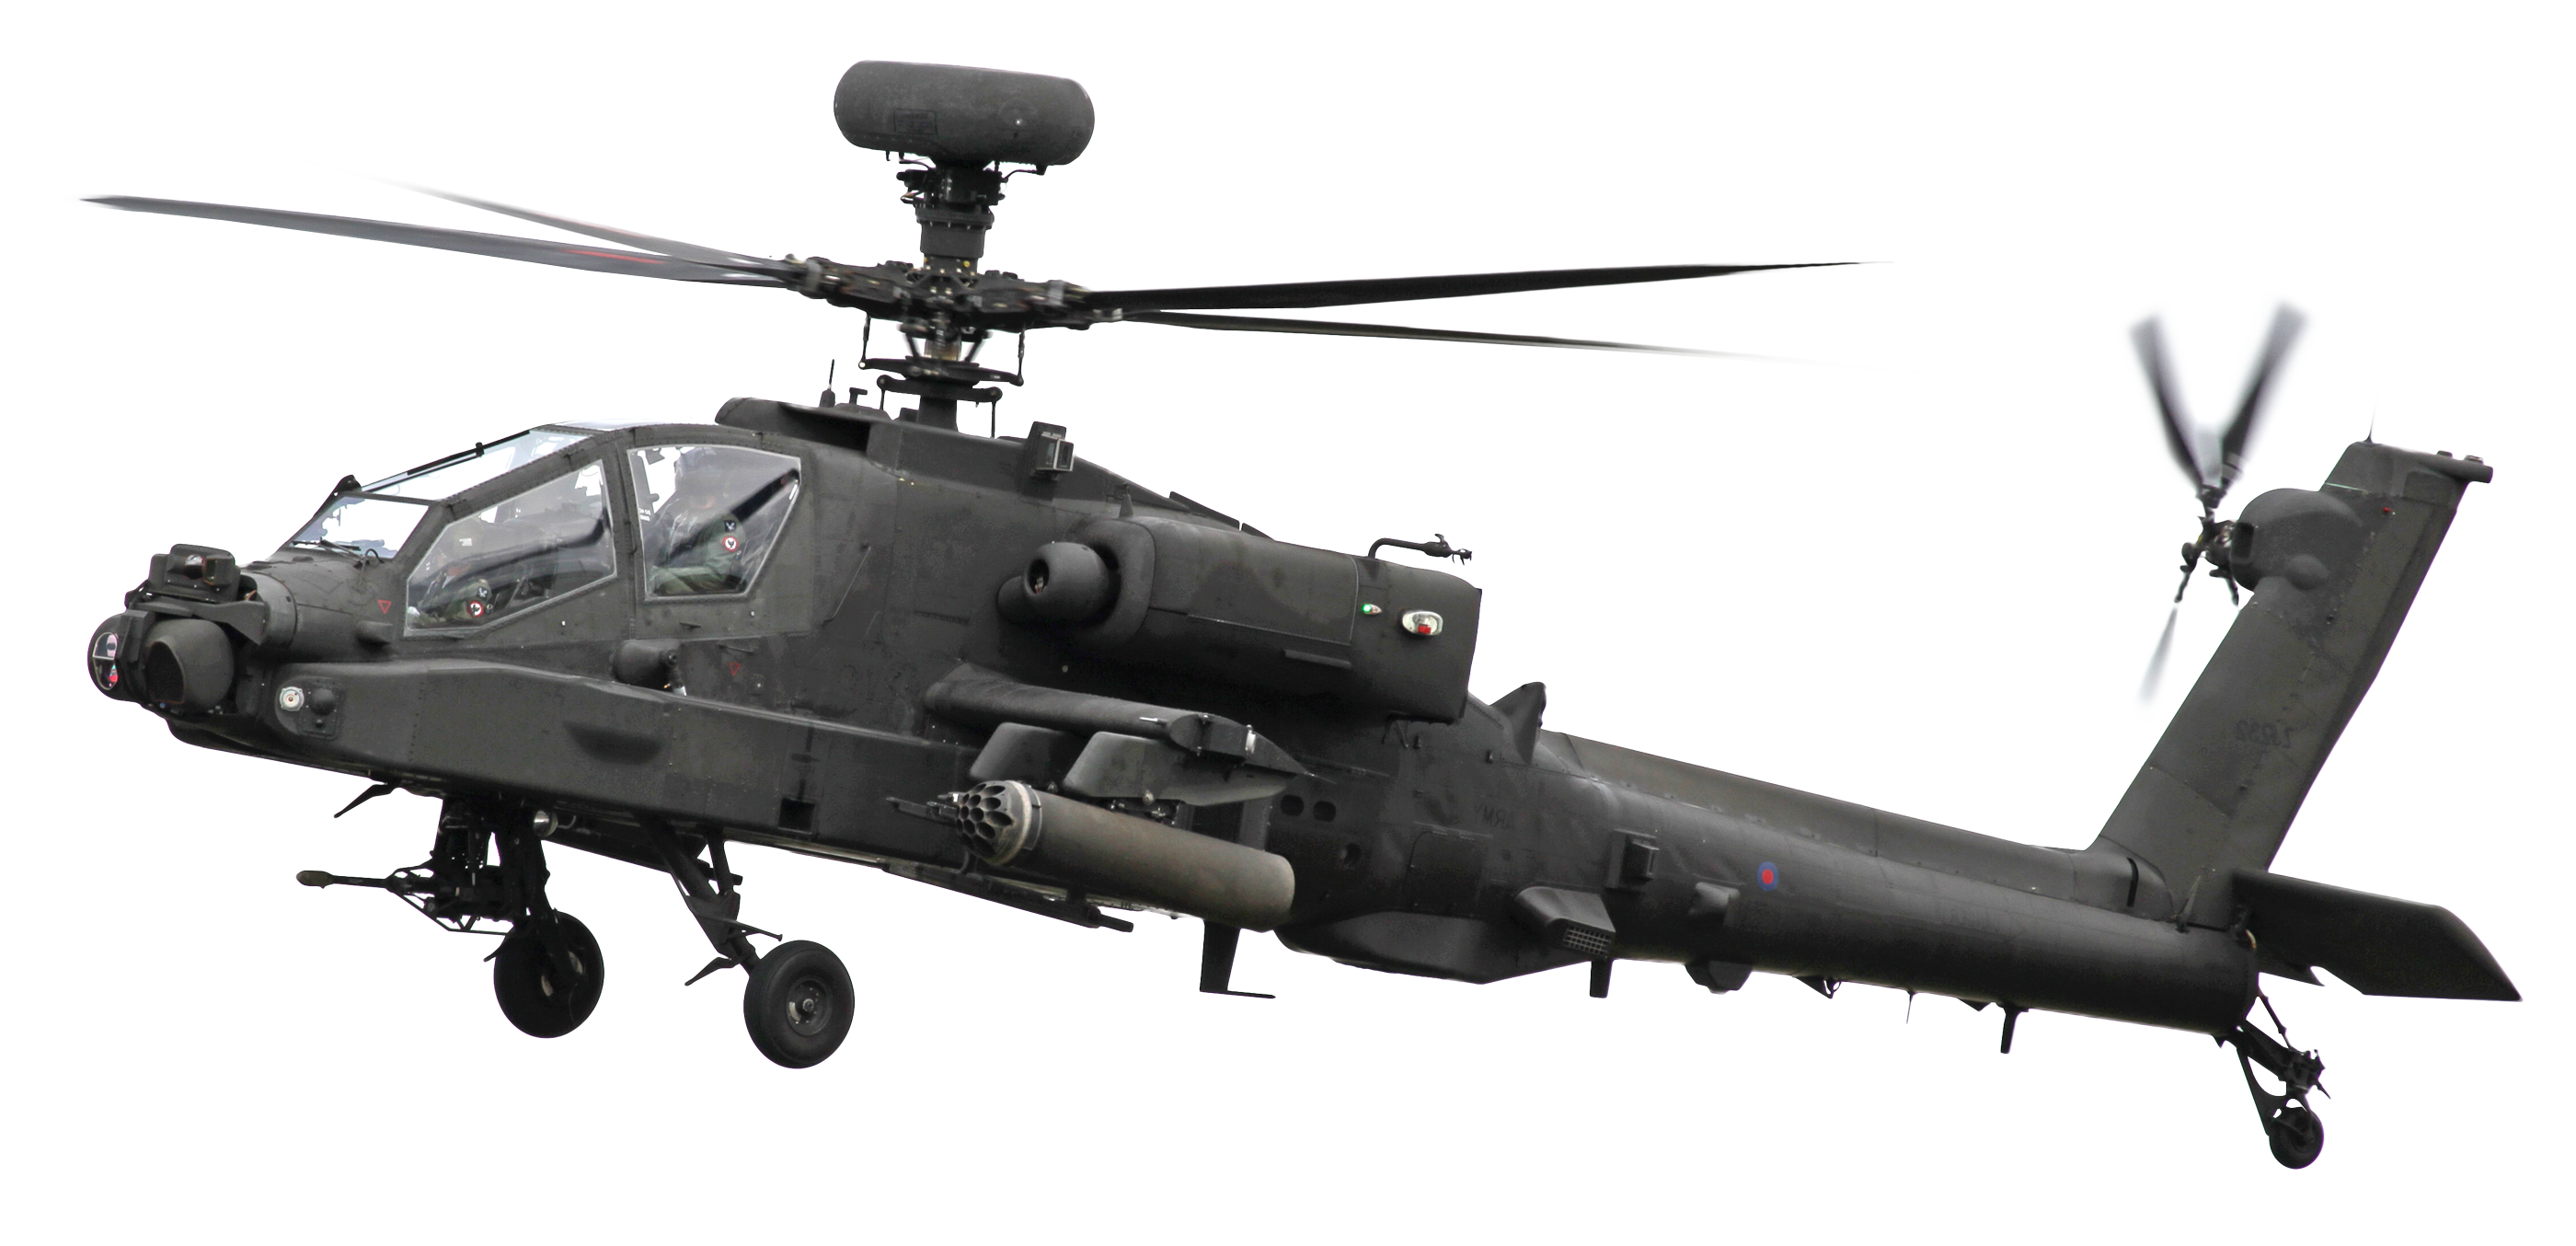 Military Helicopter Png image #40863